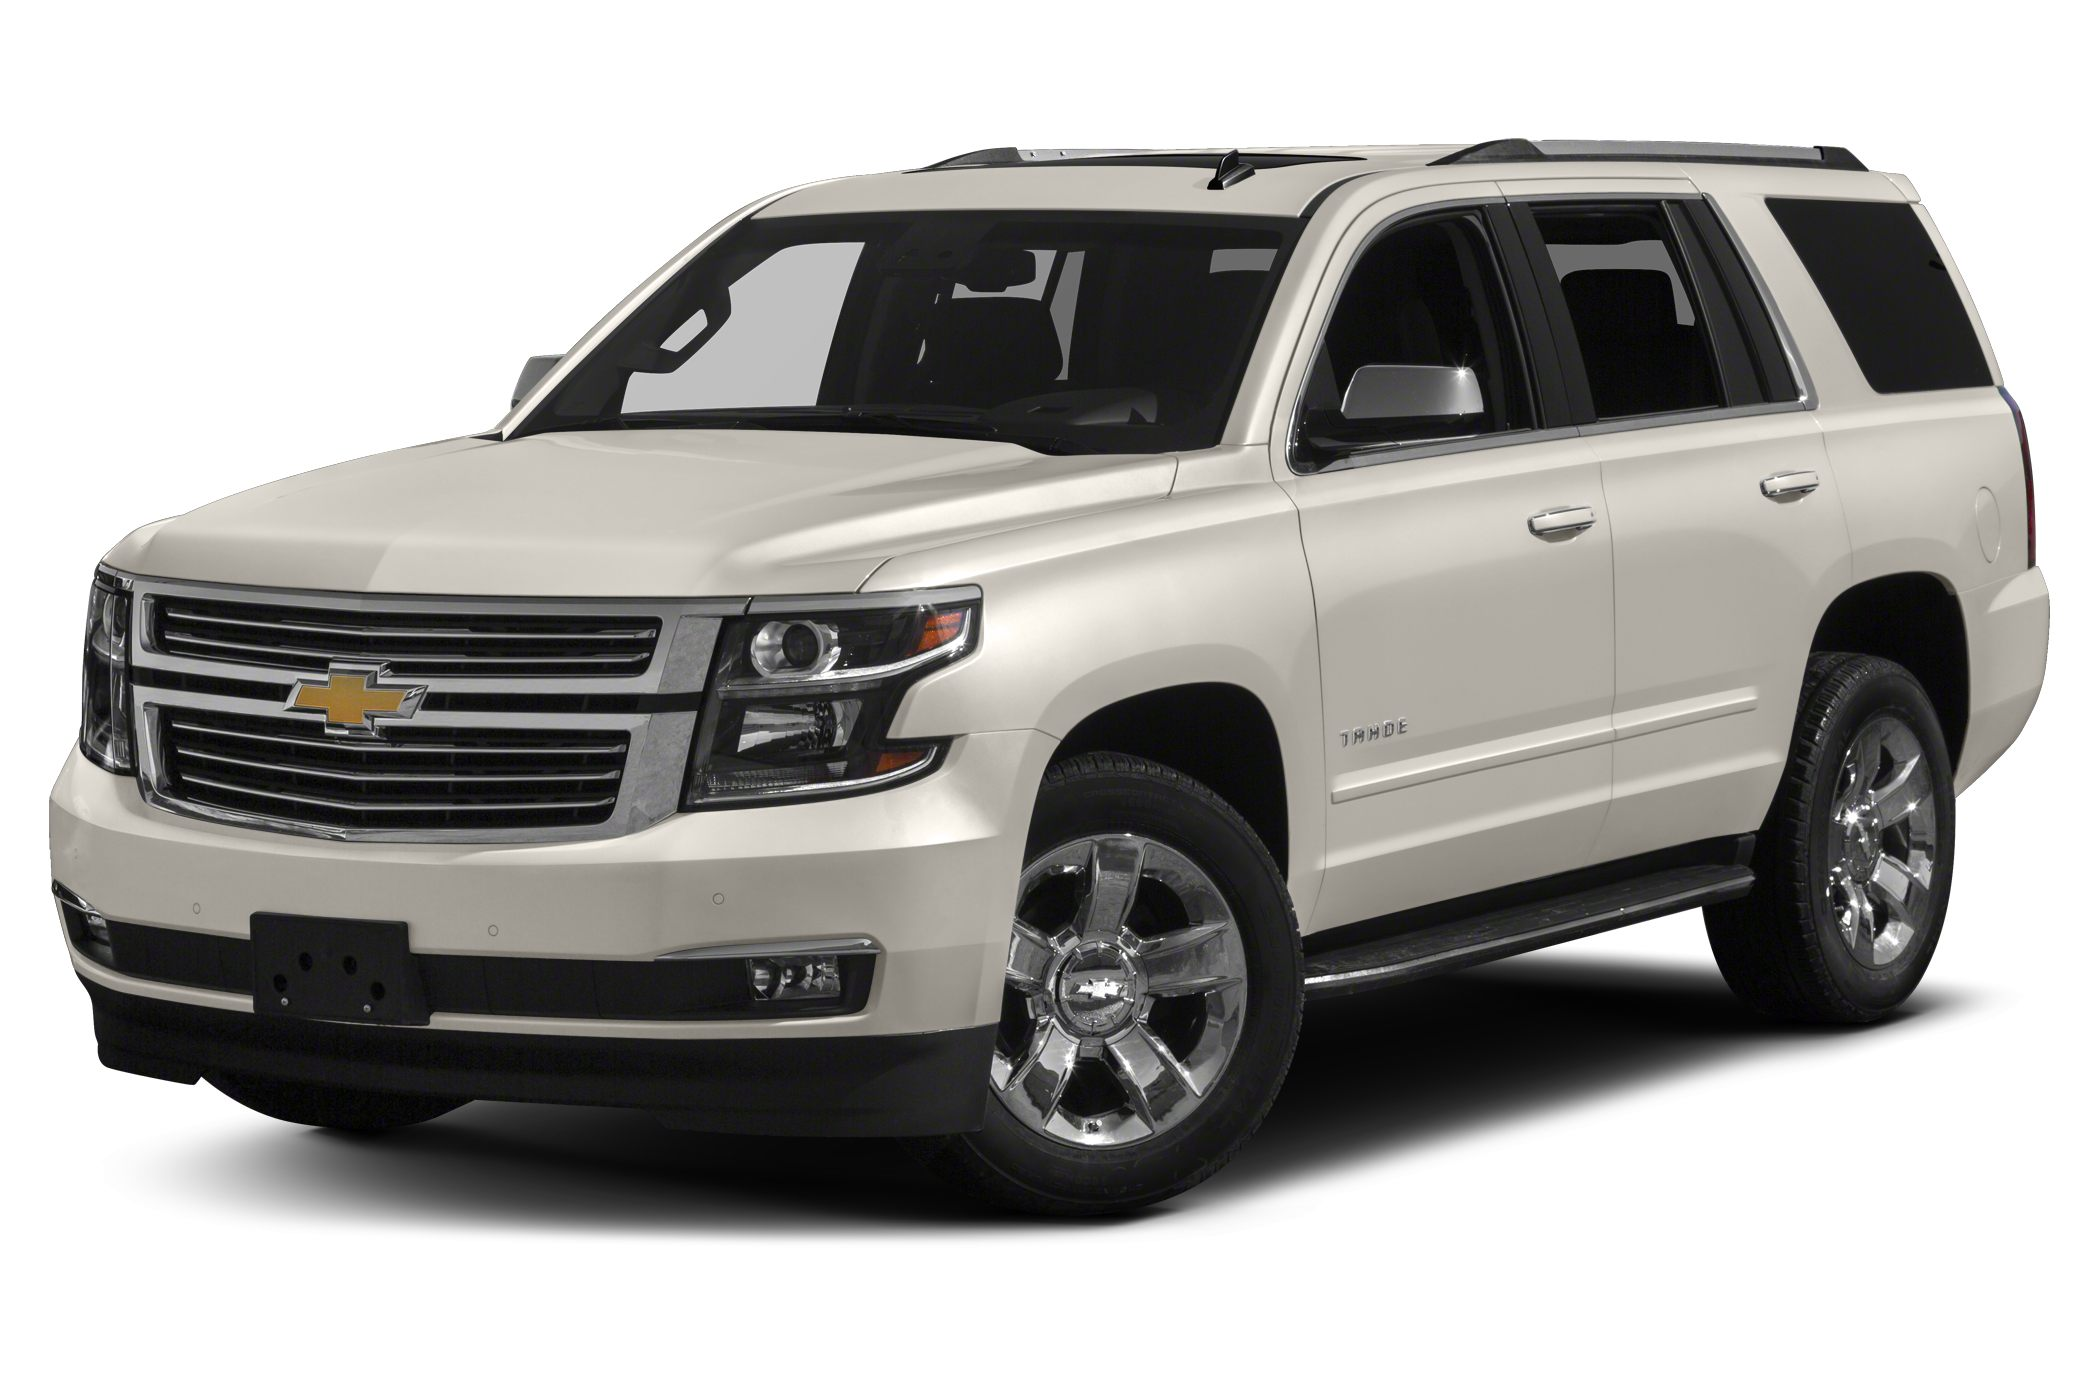 2015 Chevy Tahoe, Suburban And GMC Yukon Unveiled